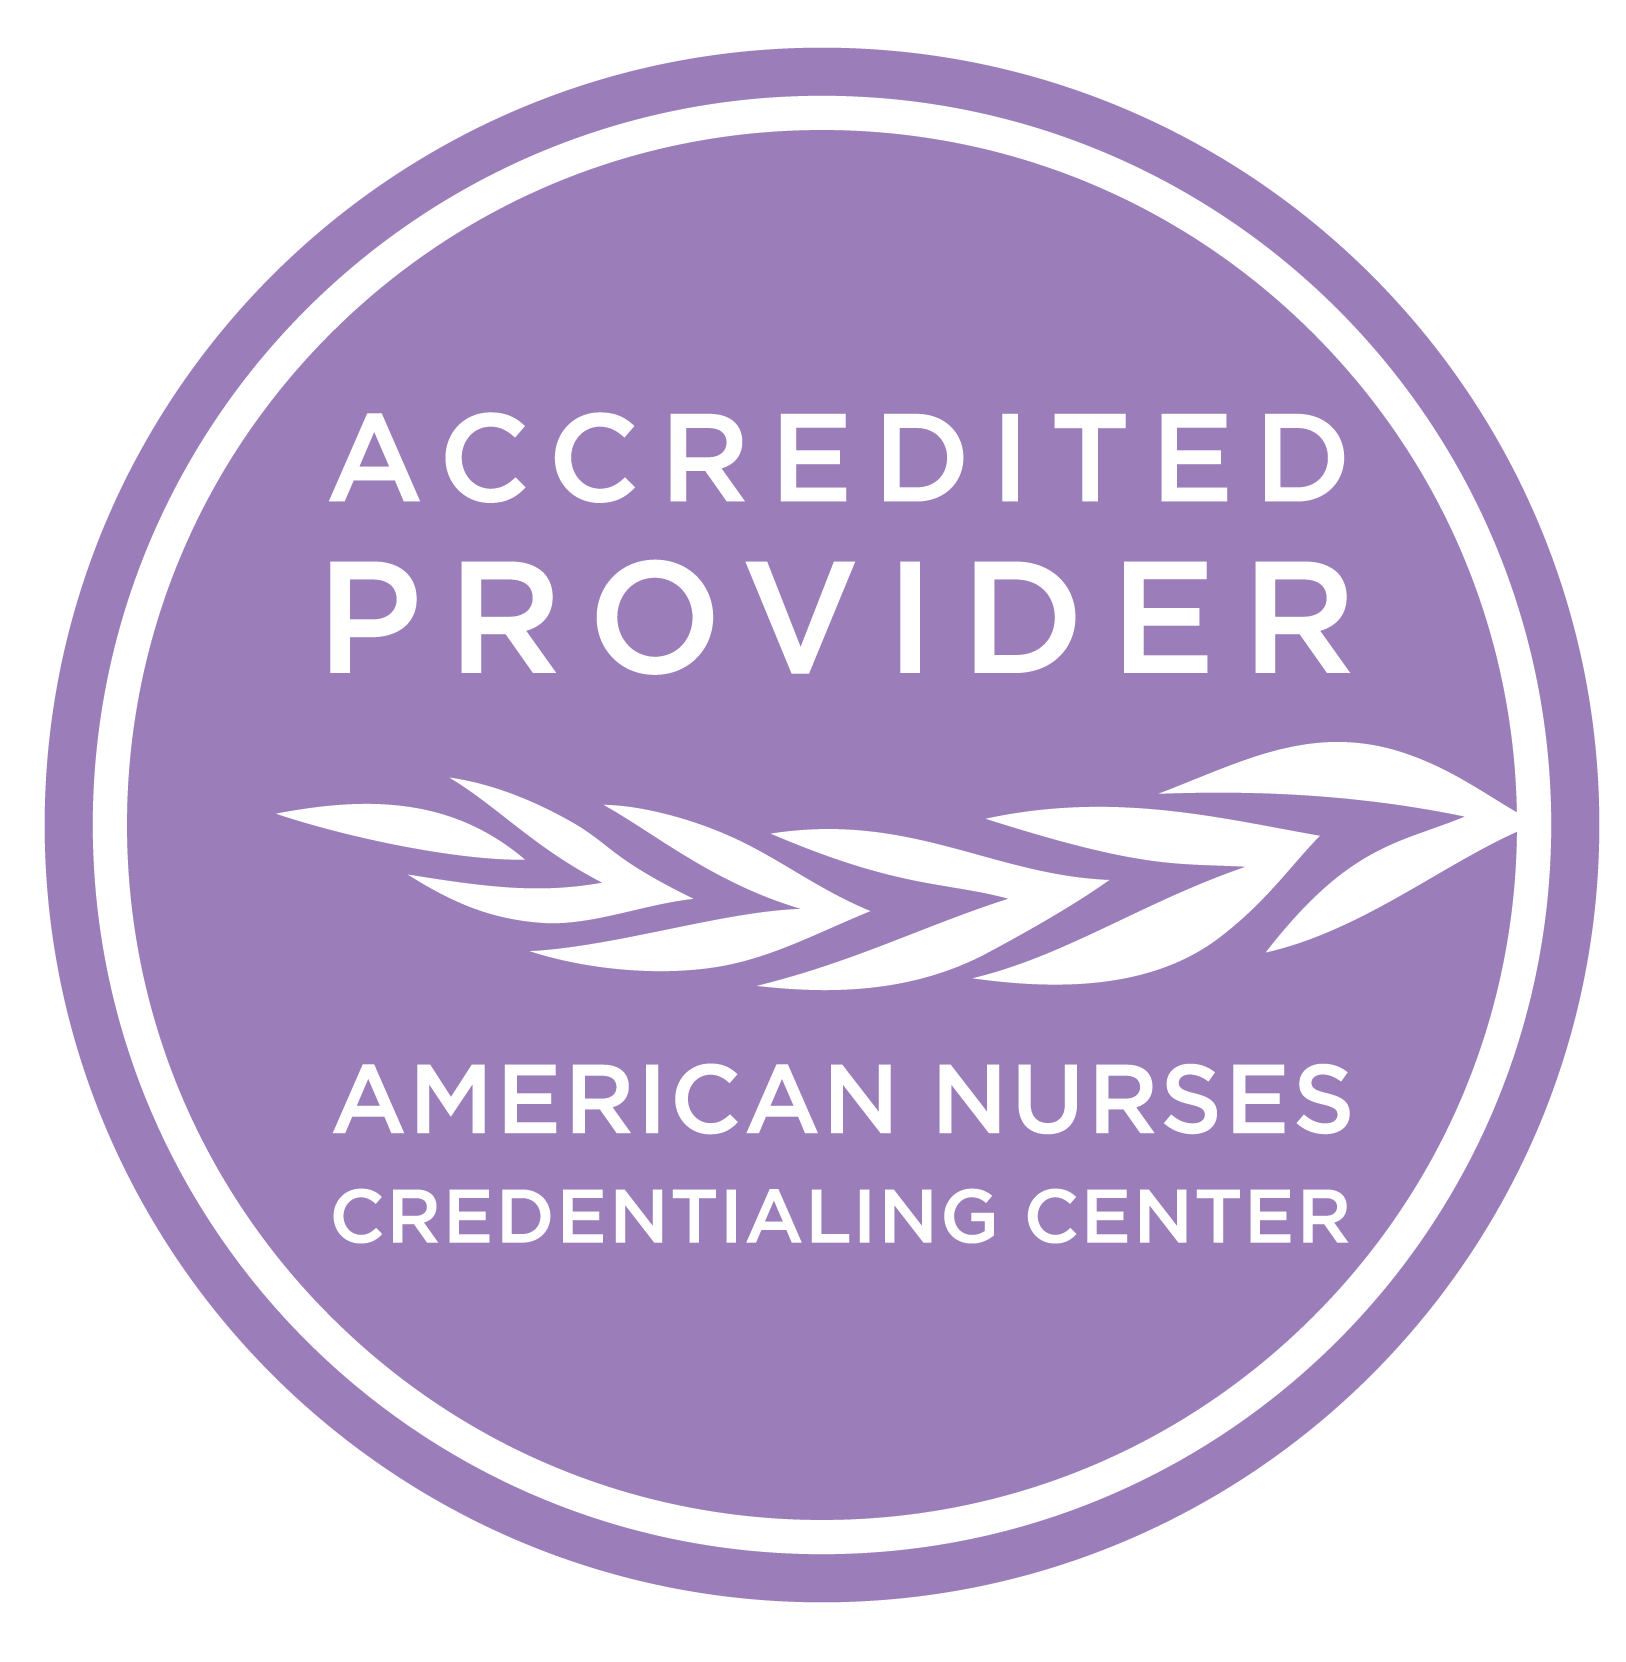 Accredited Provider. American Nurses Credentialing Center Logo.